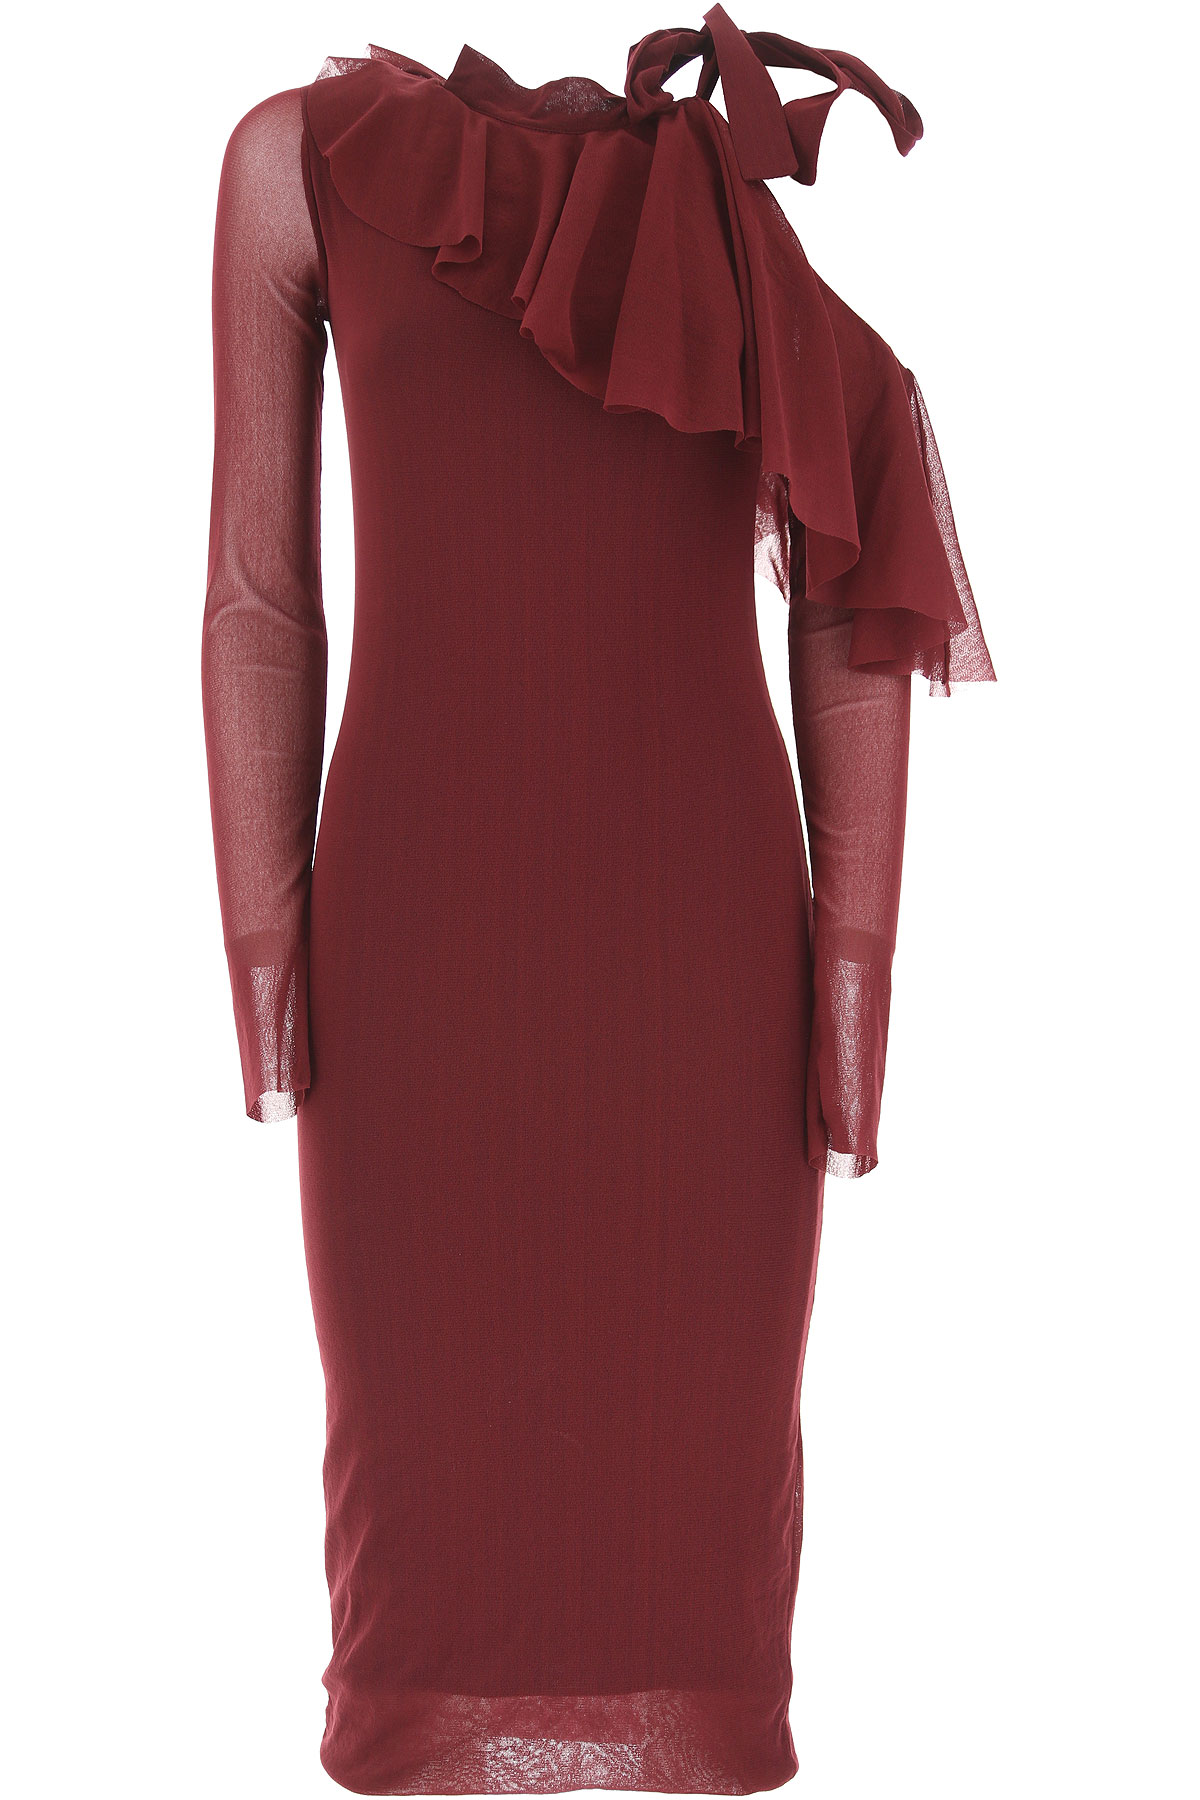 Image of Fuzzi Dress for Women, Evening Cocktail Party On Sale in Outlet, Bordeaux, polyamide, 2017, 6 8